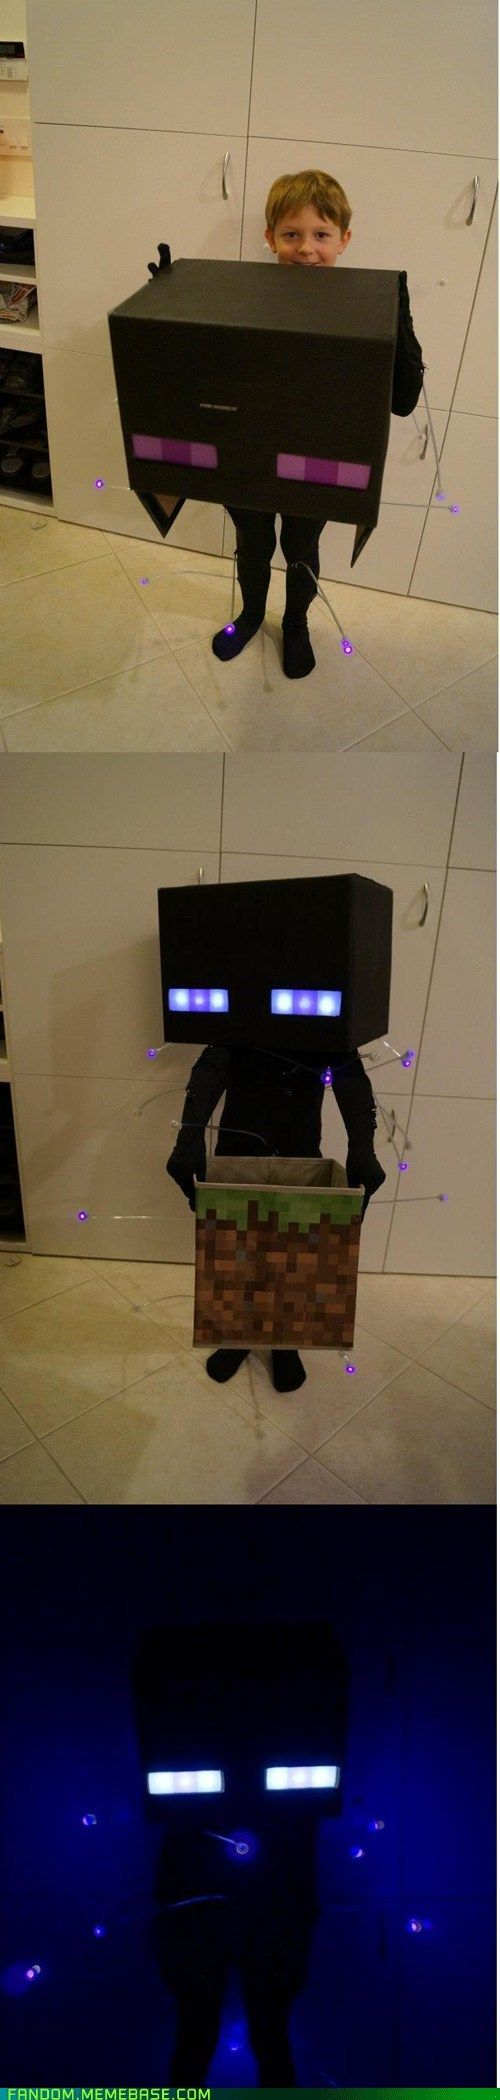 Minecraft, déguisements and impressionnant on pinterest